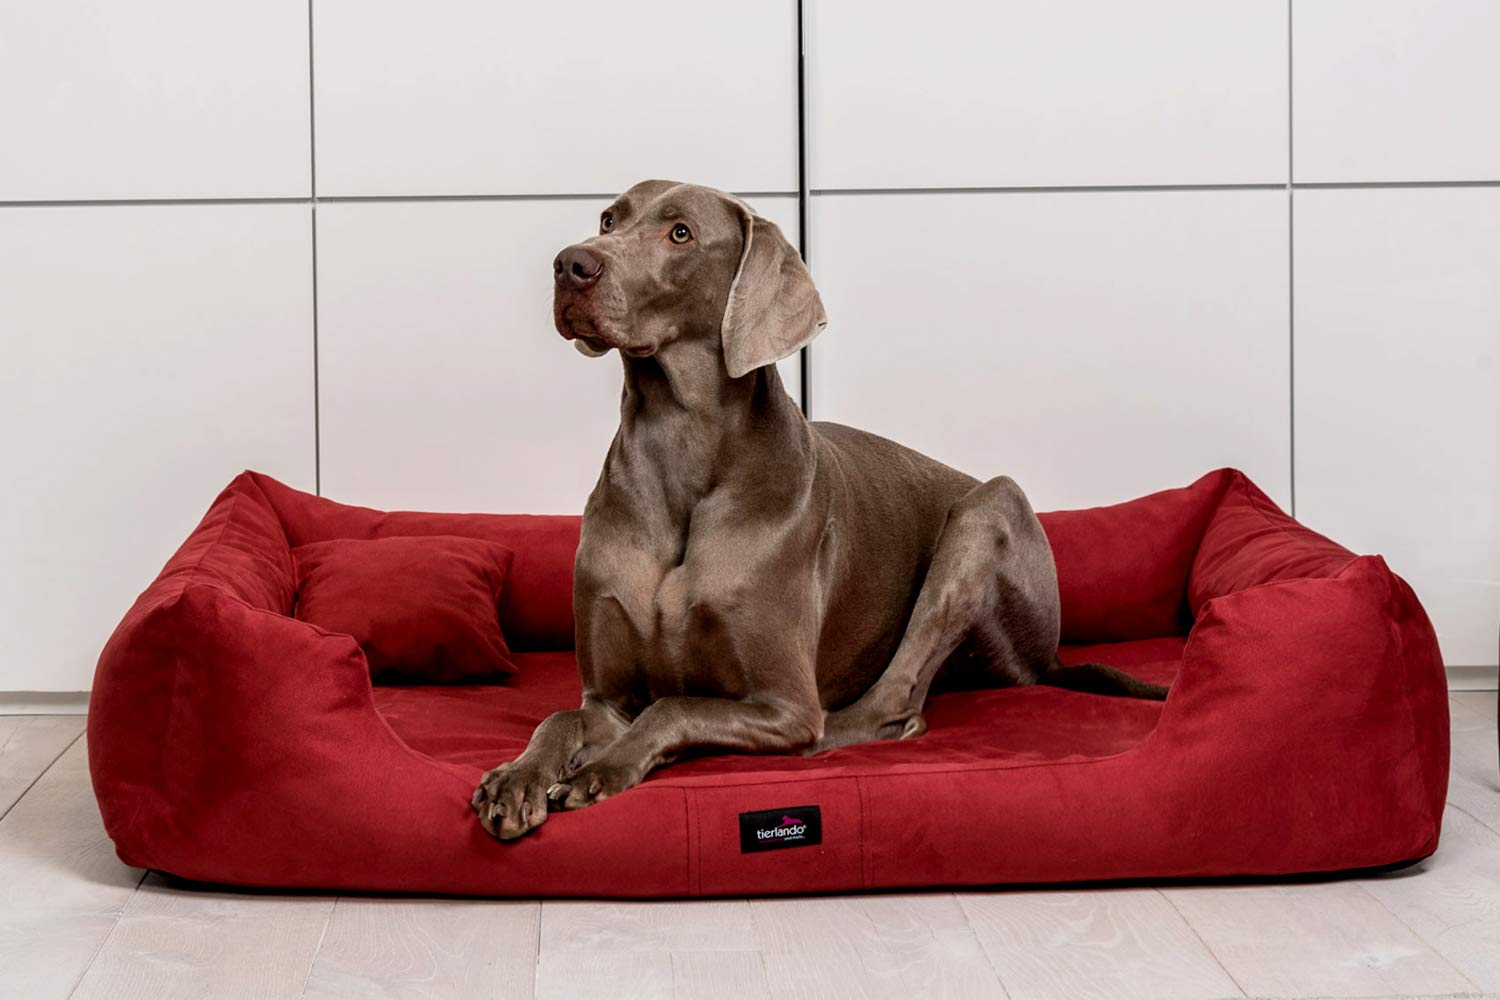 Tierlando Orthopedic Dog Bed Pluto Ortho Visco Visco Foam Made of Soft Velour Burgundy, L 105cm